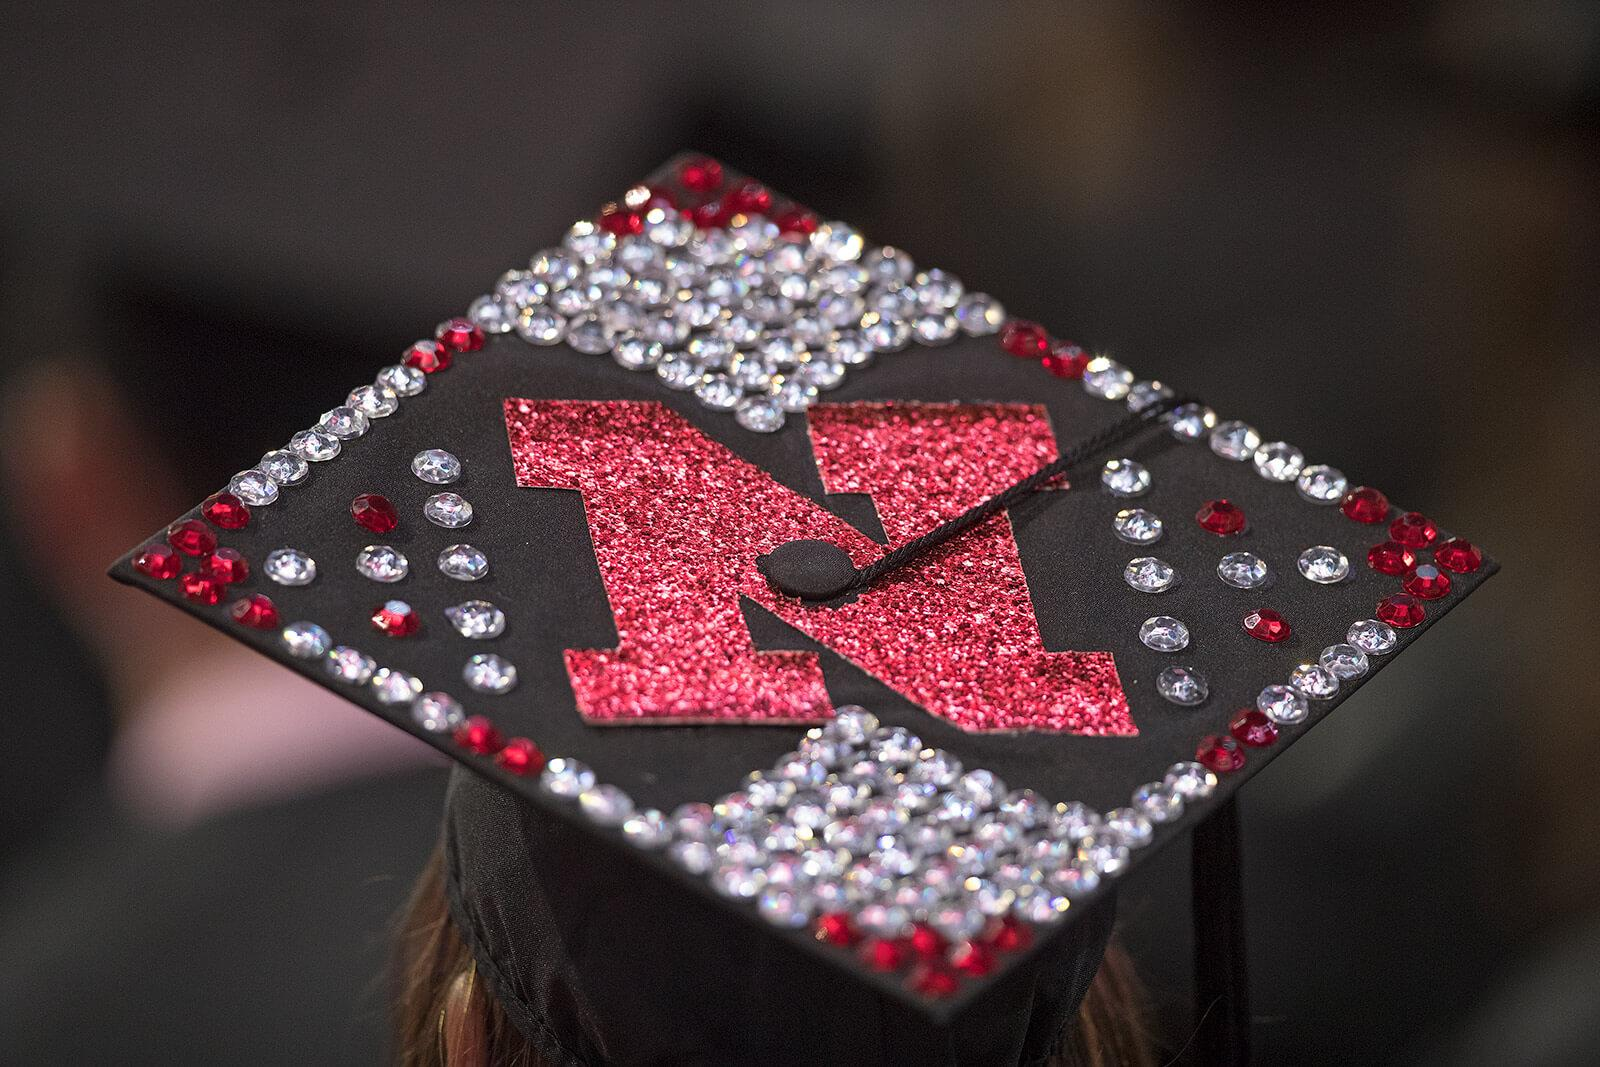 Mortar board decorated with N and jewels